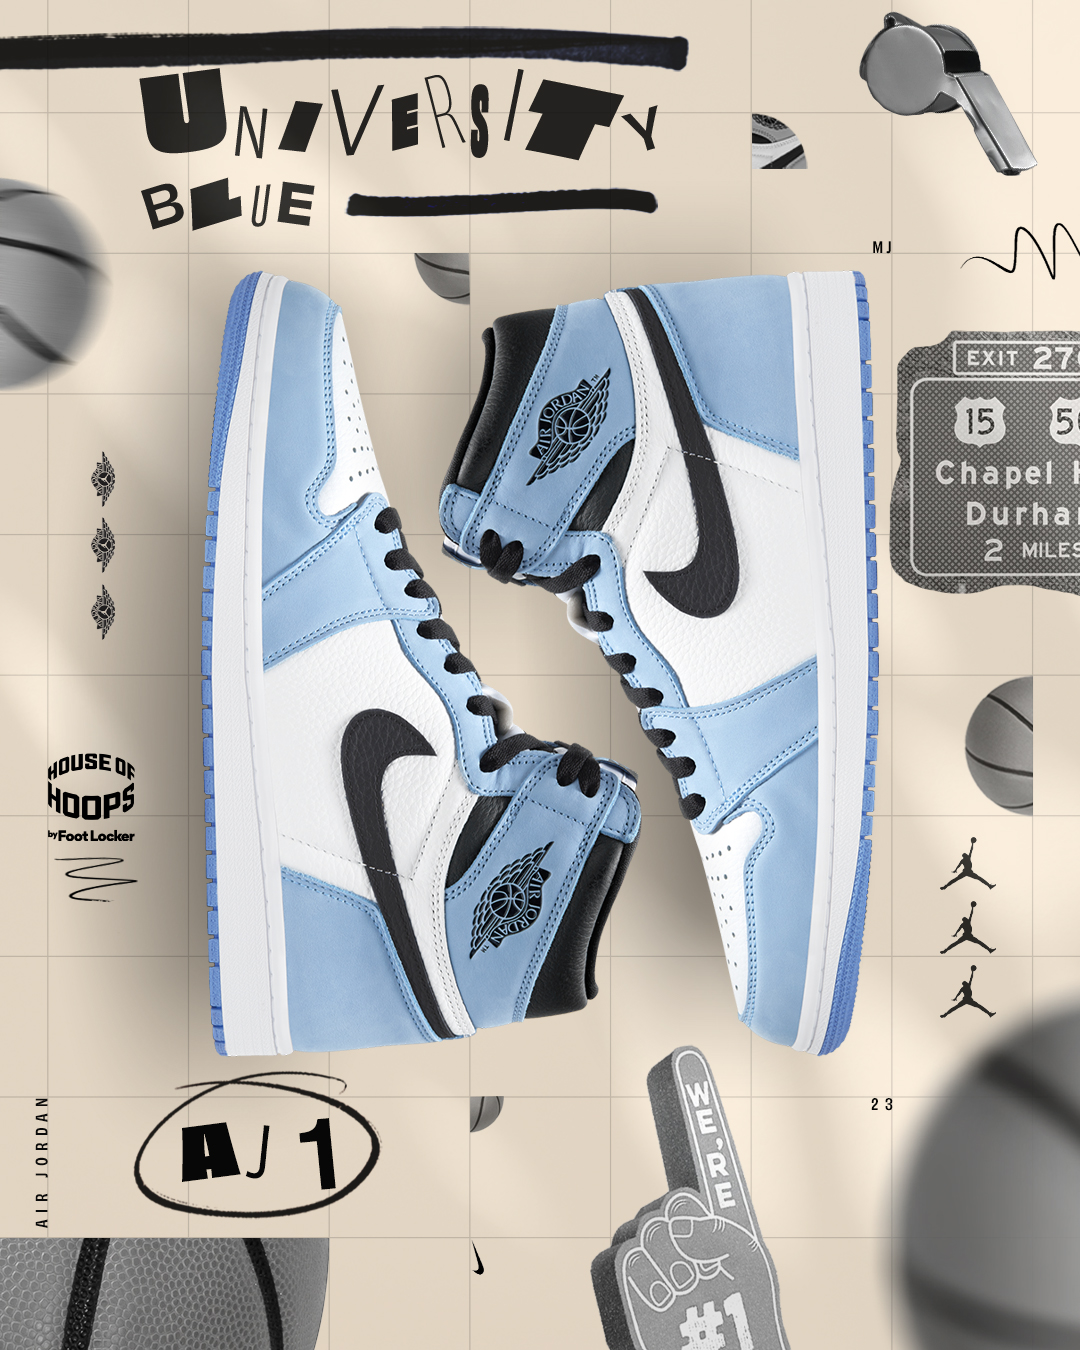 AJ1-AJ4-University-Bwelue-4×5-Shoppable-Asset